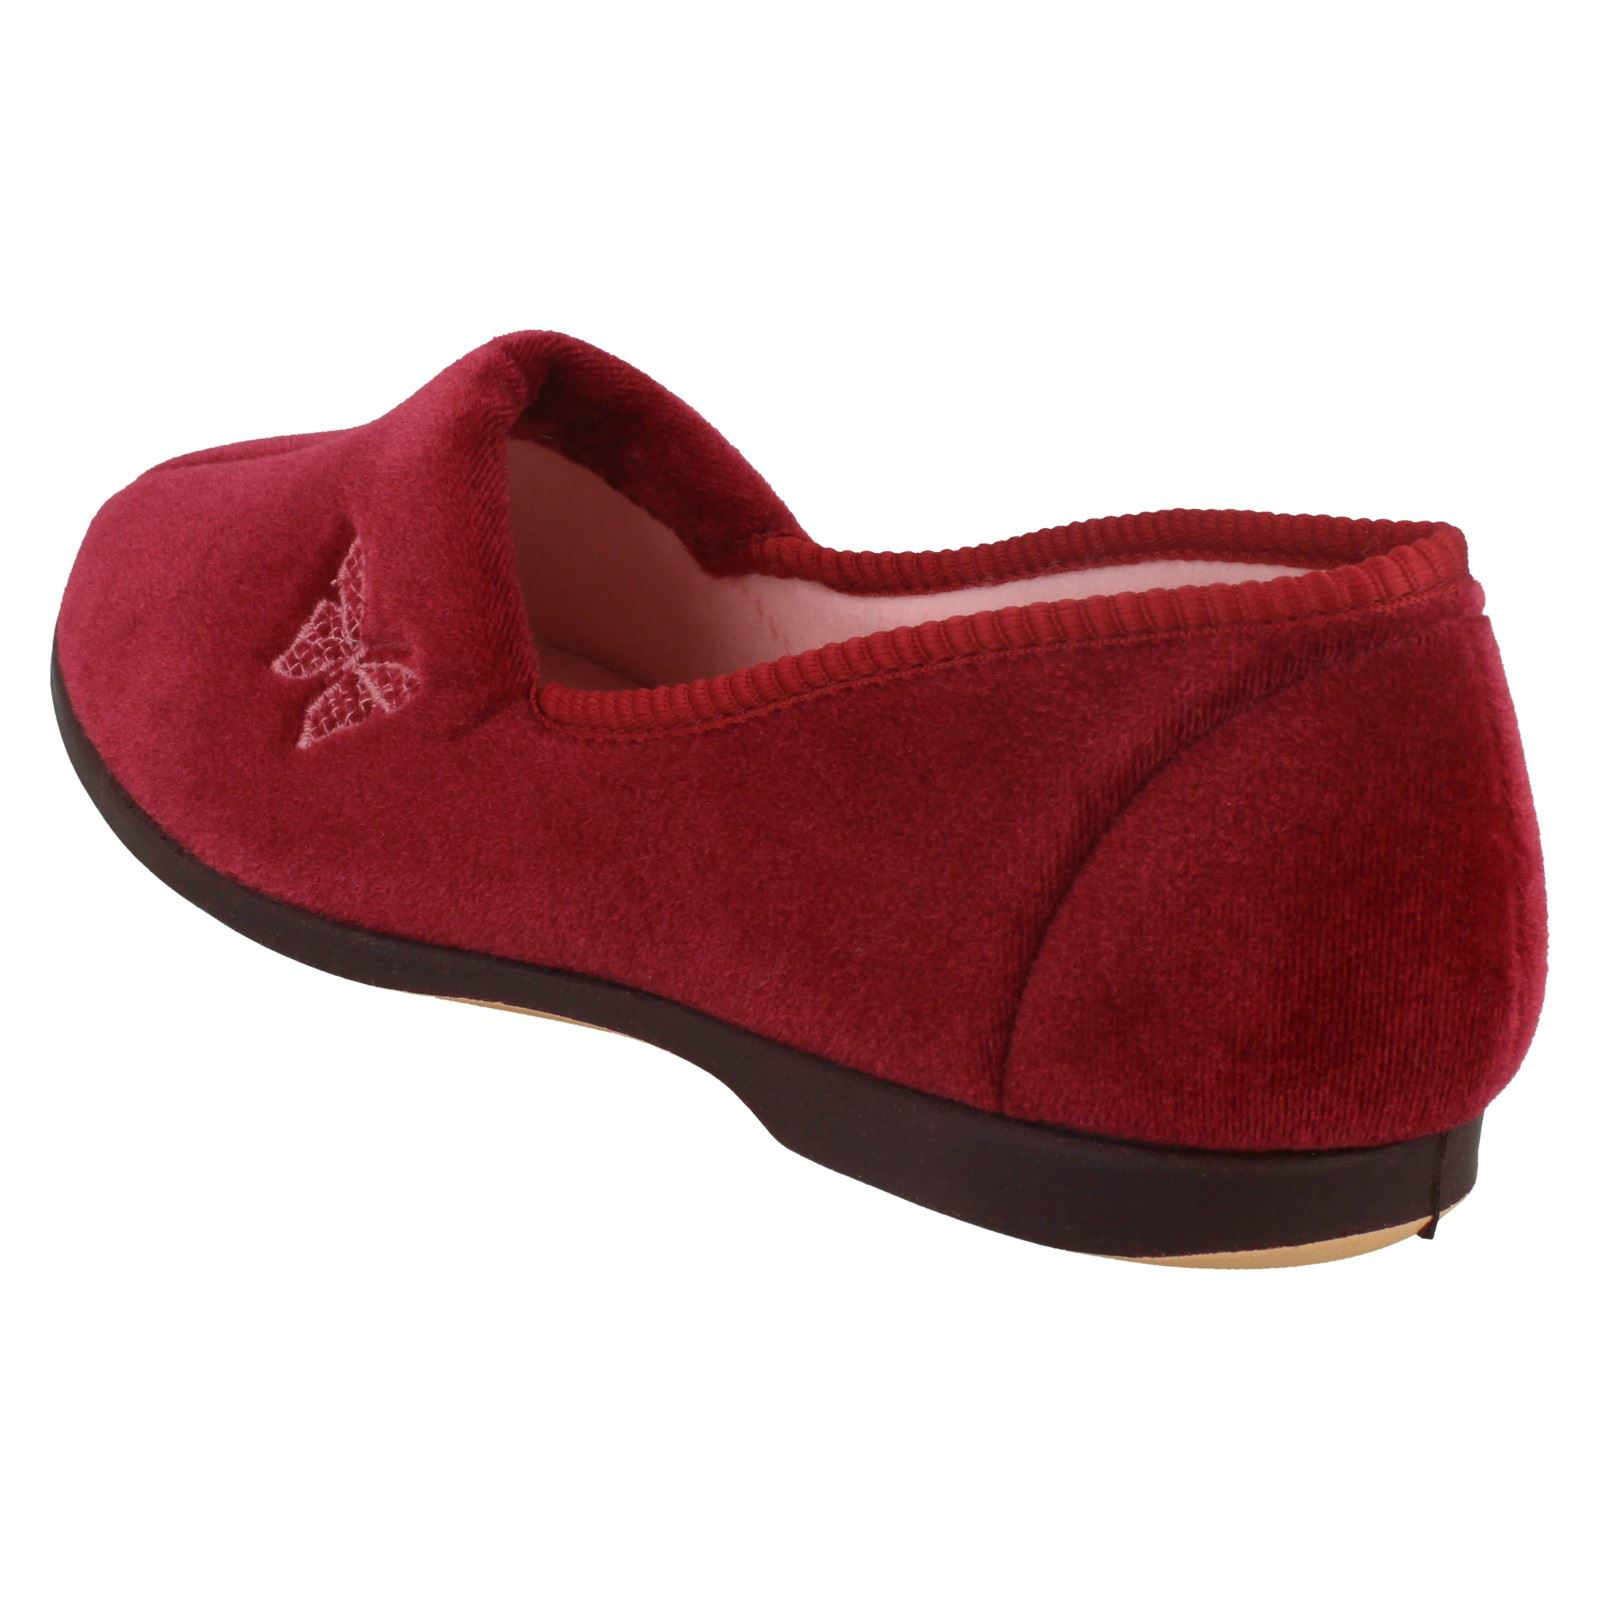 Ladies Spot on Velour Farfalla Trim-Pantofola